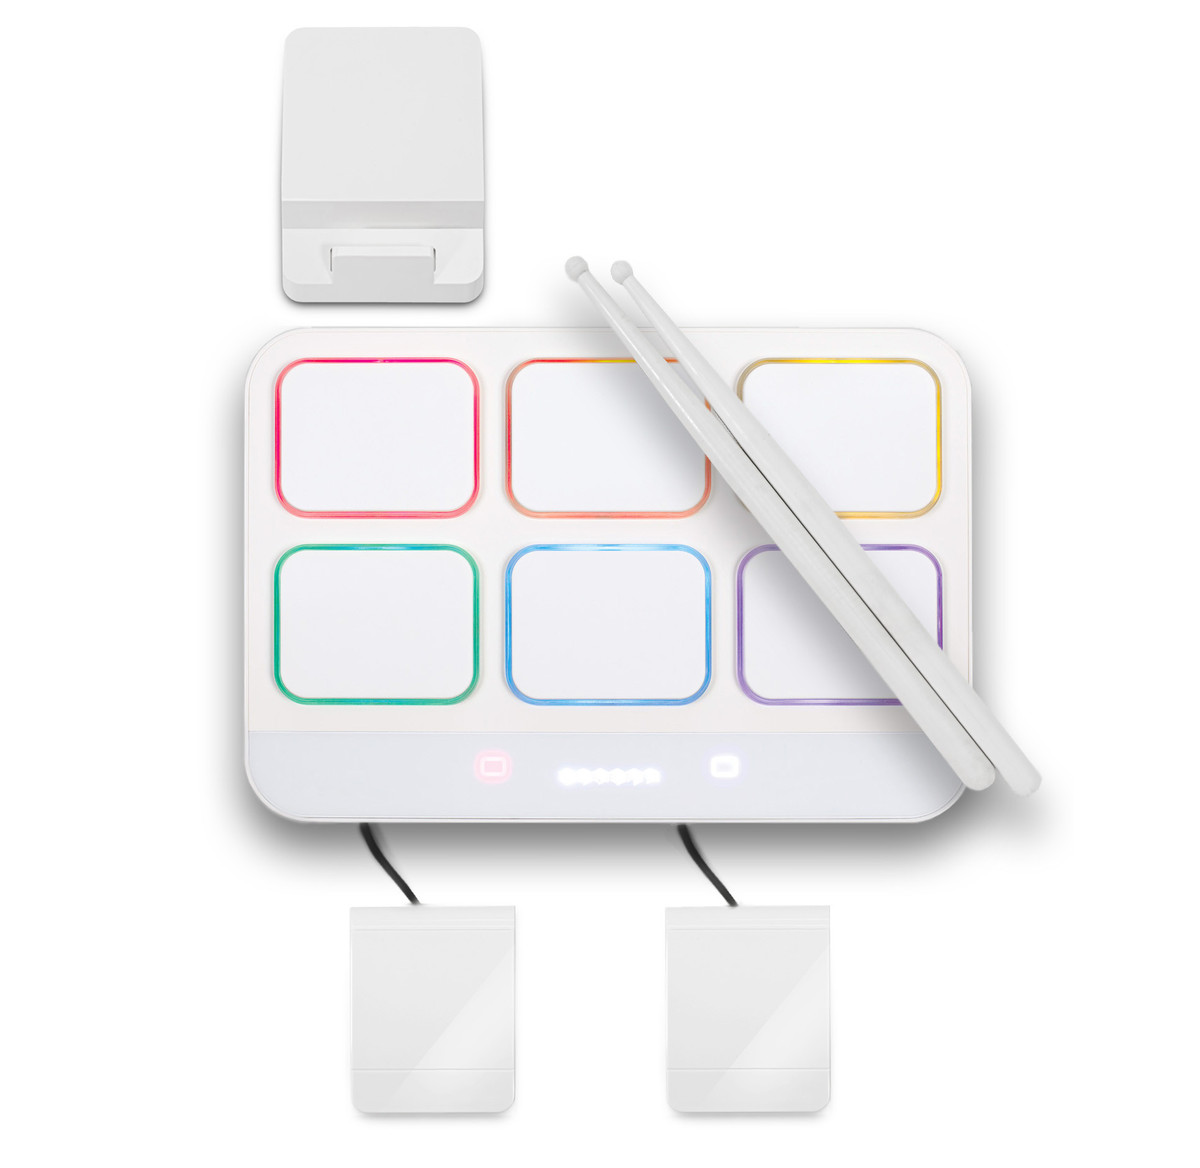 cubeat drum machine and midi controller for ipad pc nearly new at gear4music. Black Bedroom Furniture Sets. Home Design Ideas